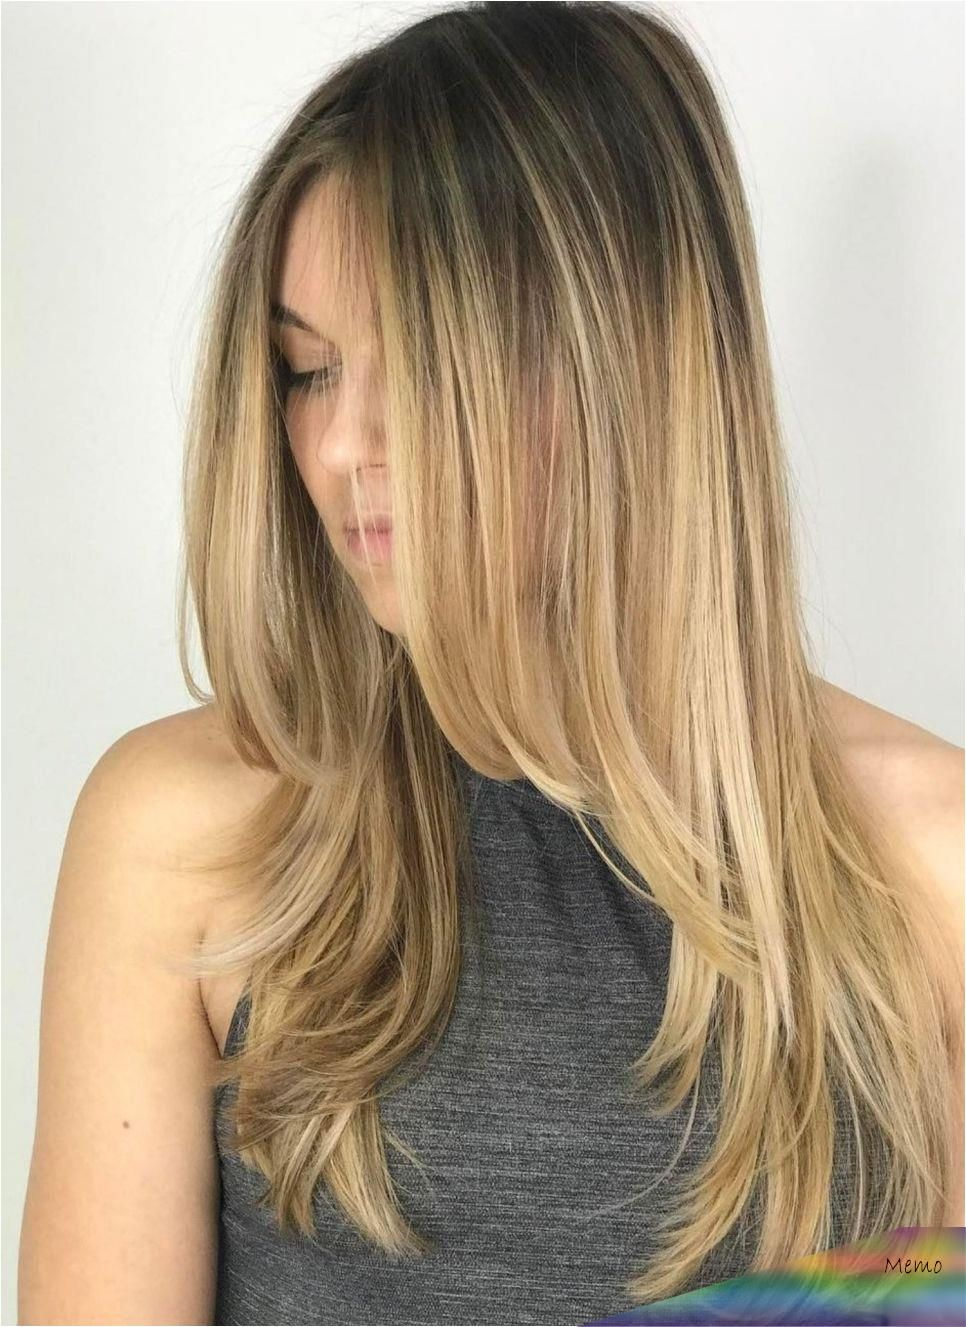 May 2, 2020 - #72: Descending Face-Framing Layers With layered haircuts for  long hair, you… in 2020 | Thin straight hair, Long thin hair, Haircuts for  long hair with layers